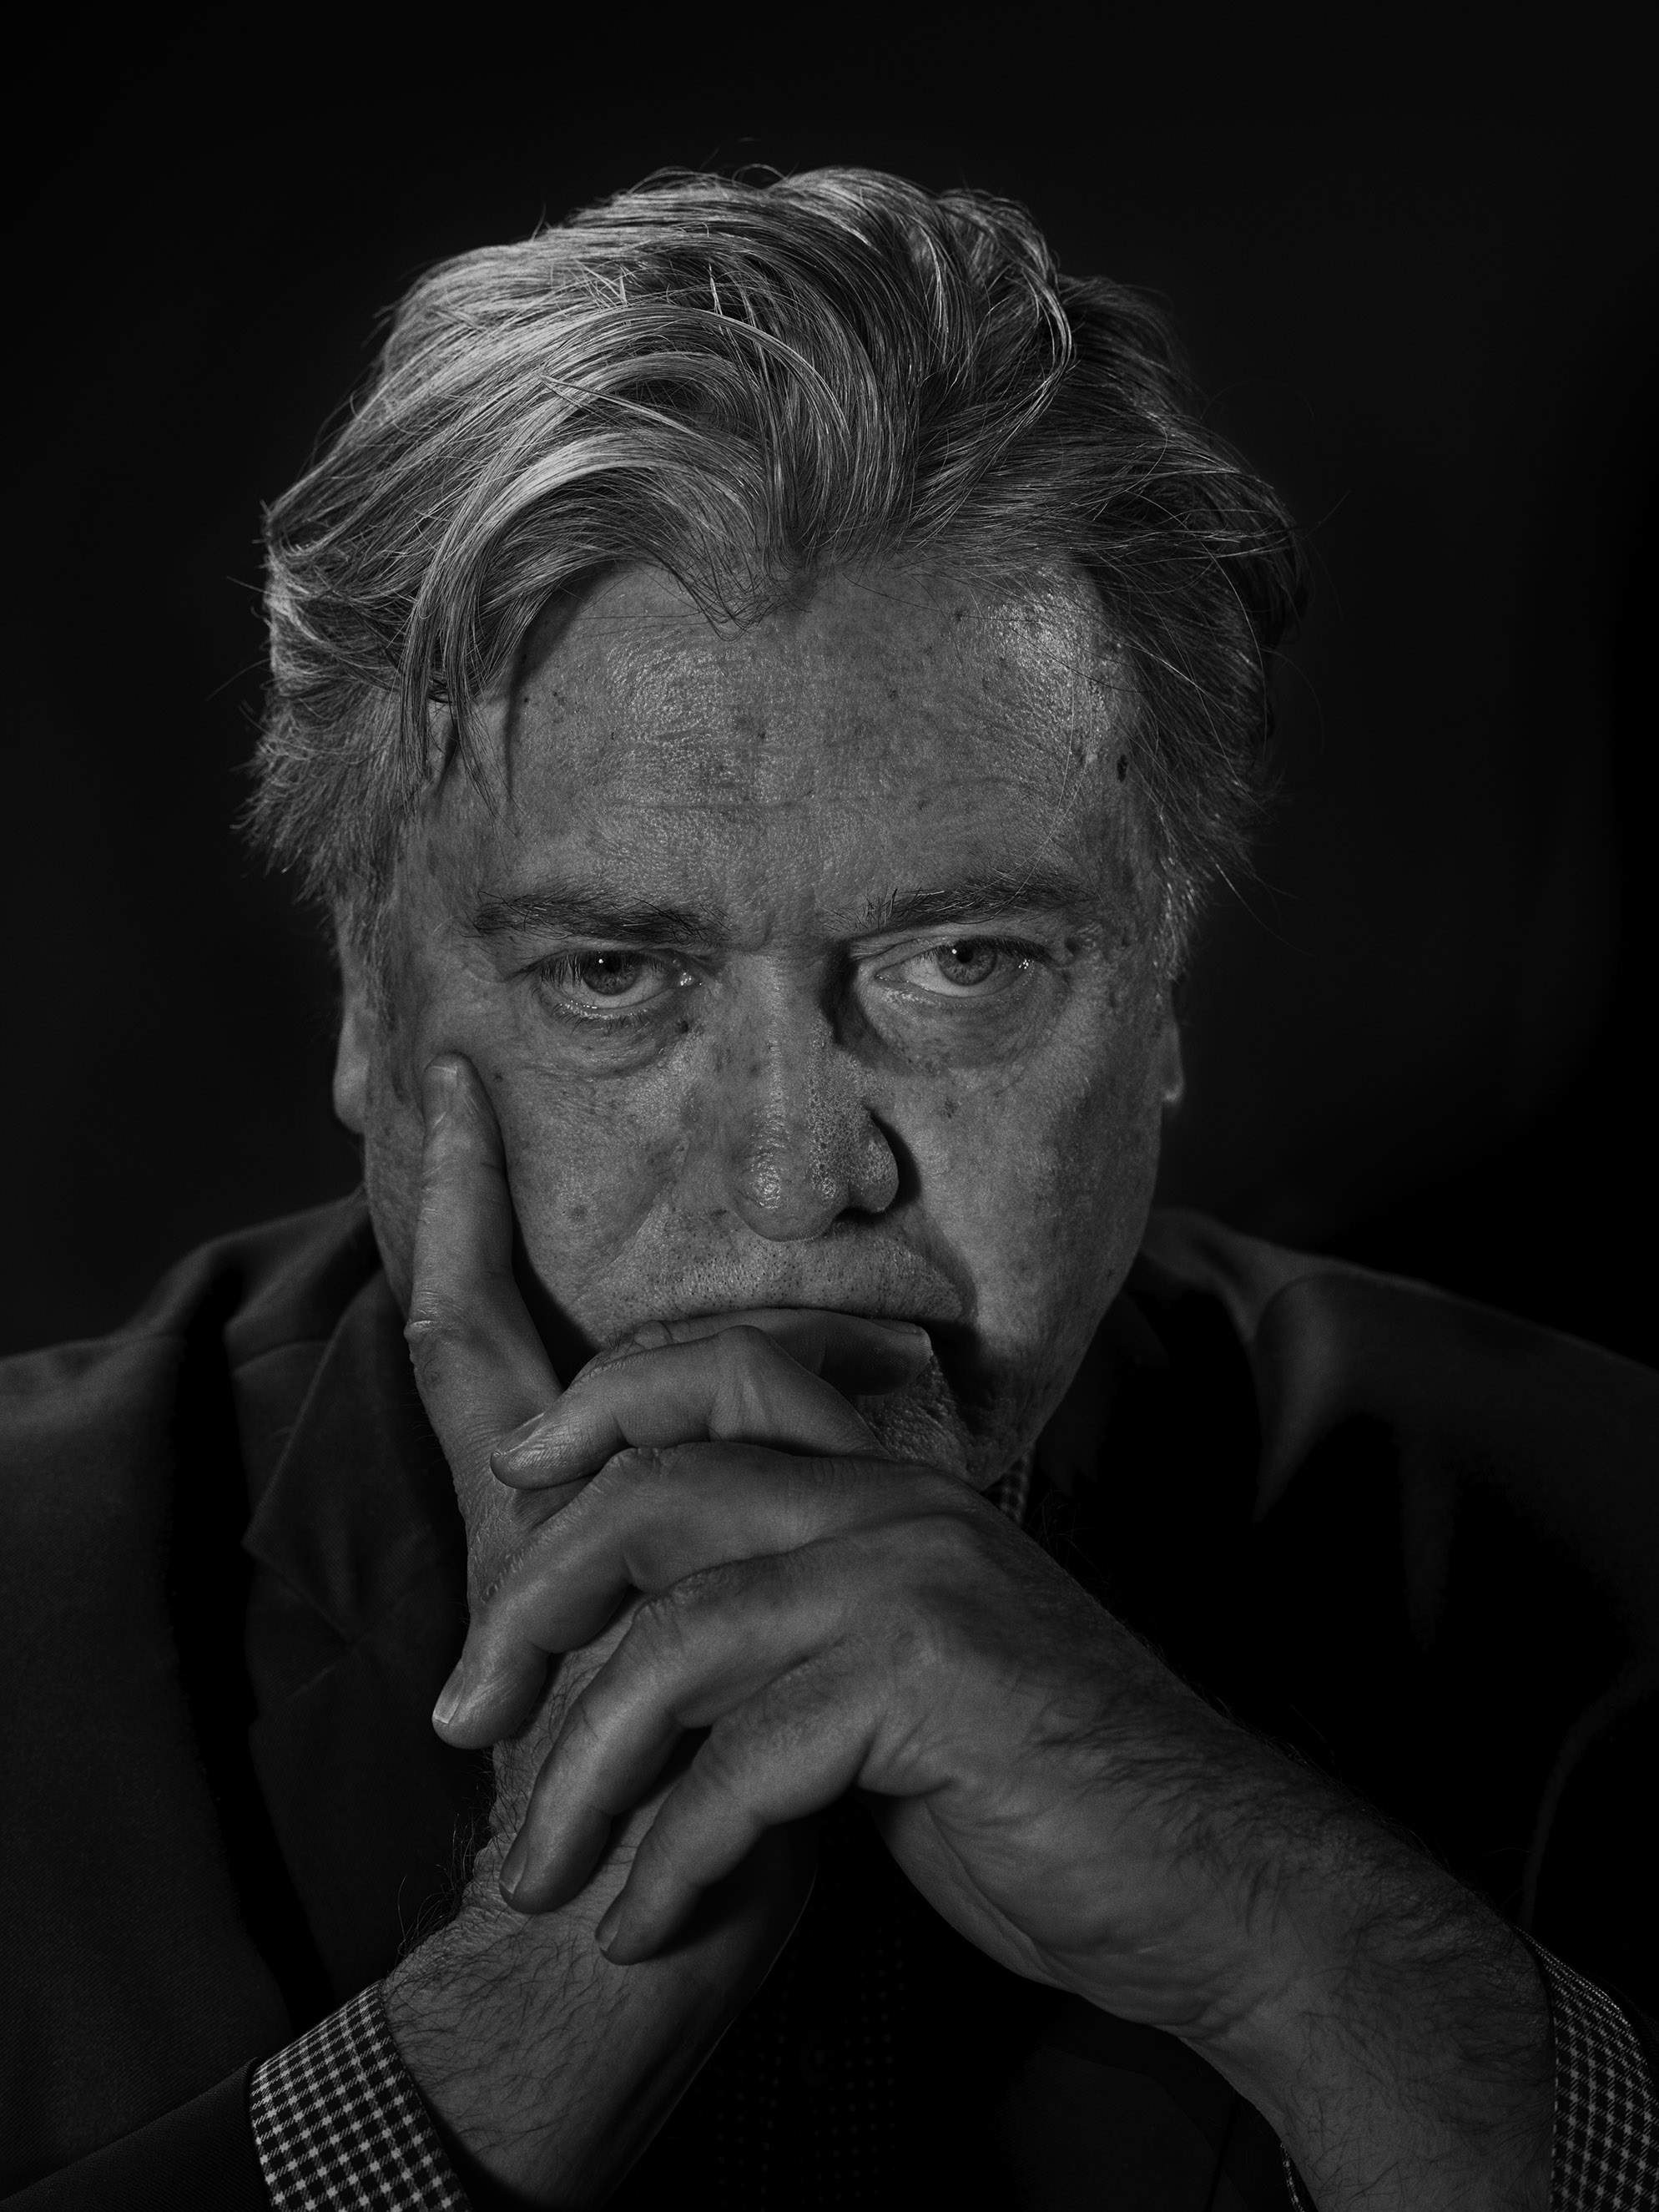 The Rabble-Rouser                               The former head of Breitbart, Stephen Bannon has pushed for a darker, more divisive populism, publishing articles that stirred racial animus. He will be a senior adviser at the White House.                               From                                 See Portraits of Donald Trump's Most Trusted Advisers